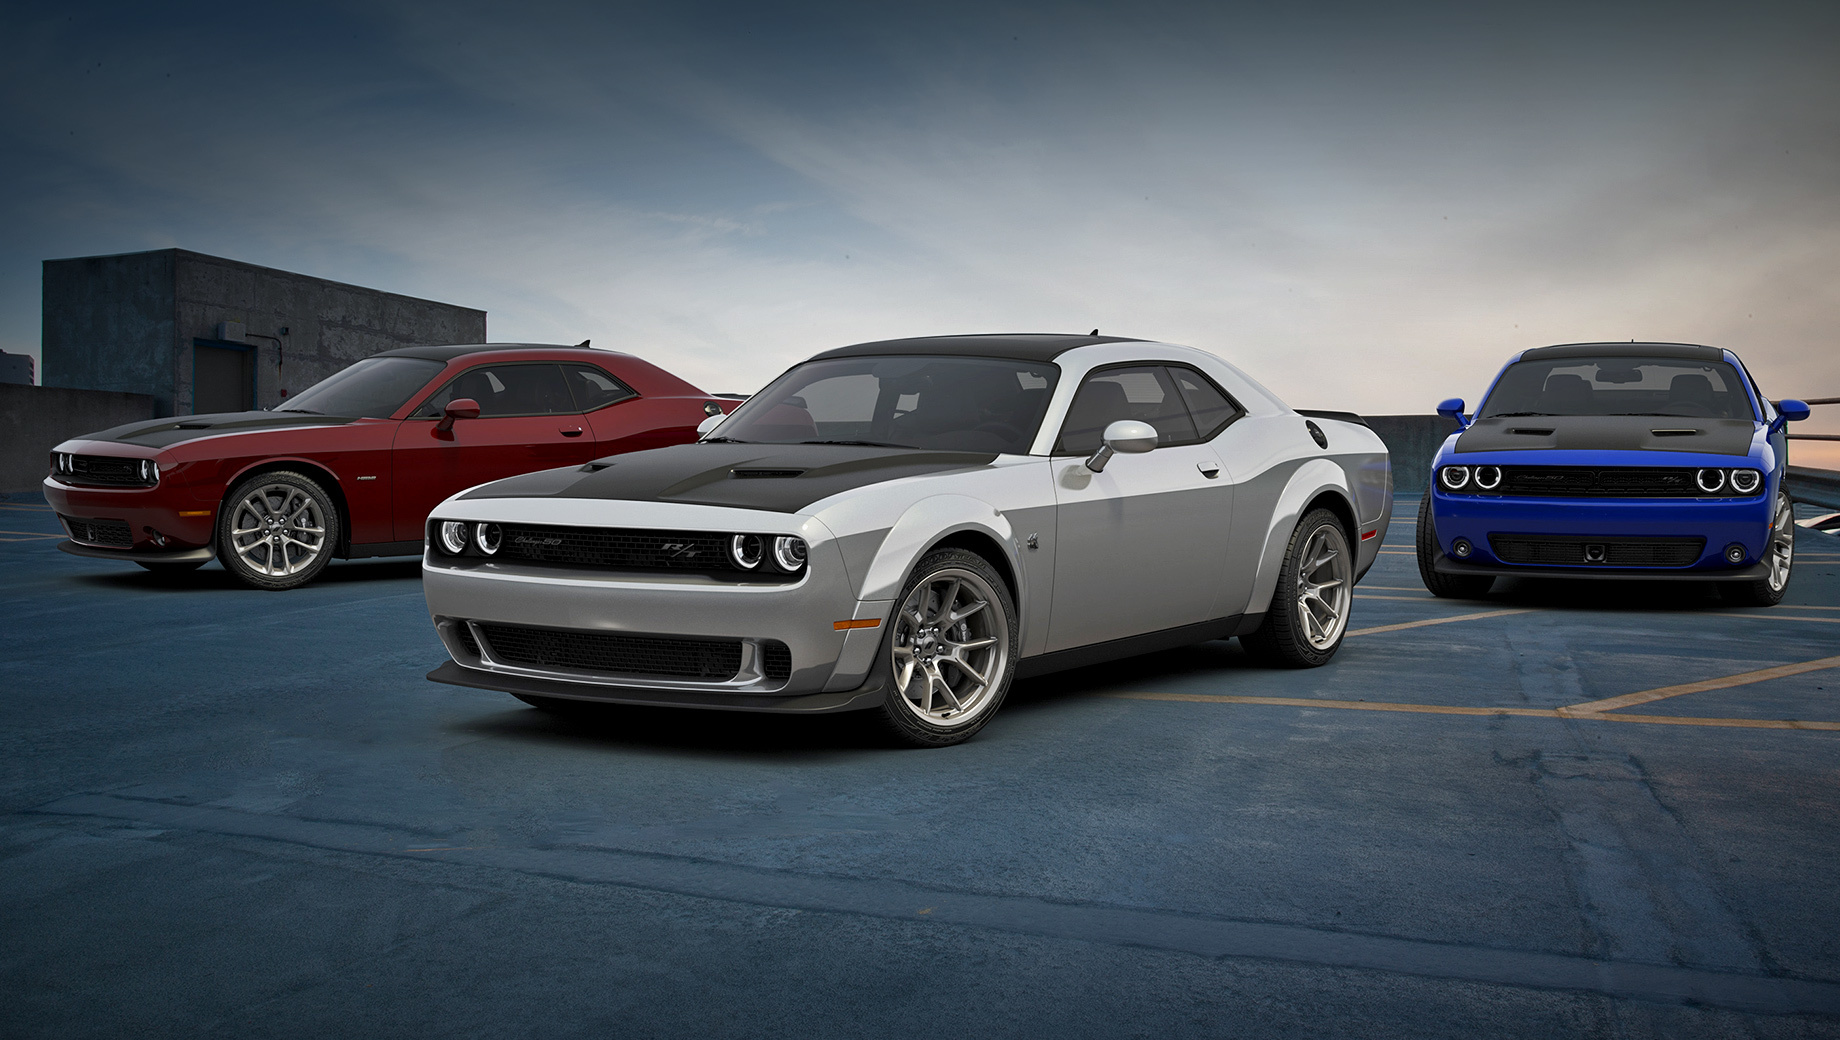 Dodge Challenger 50th Anniversary Commemorative вышел на рынок